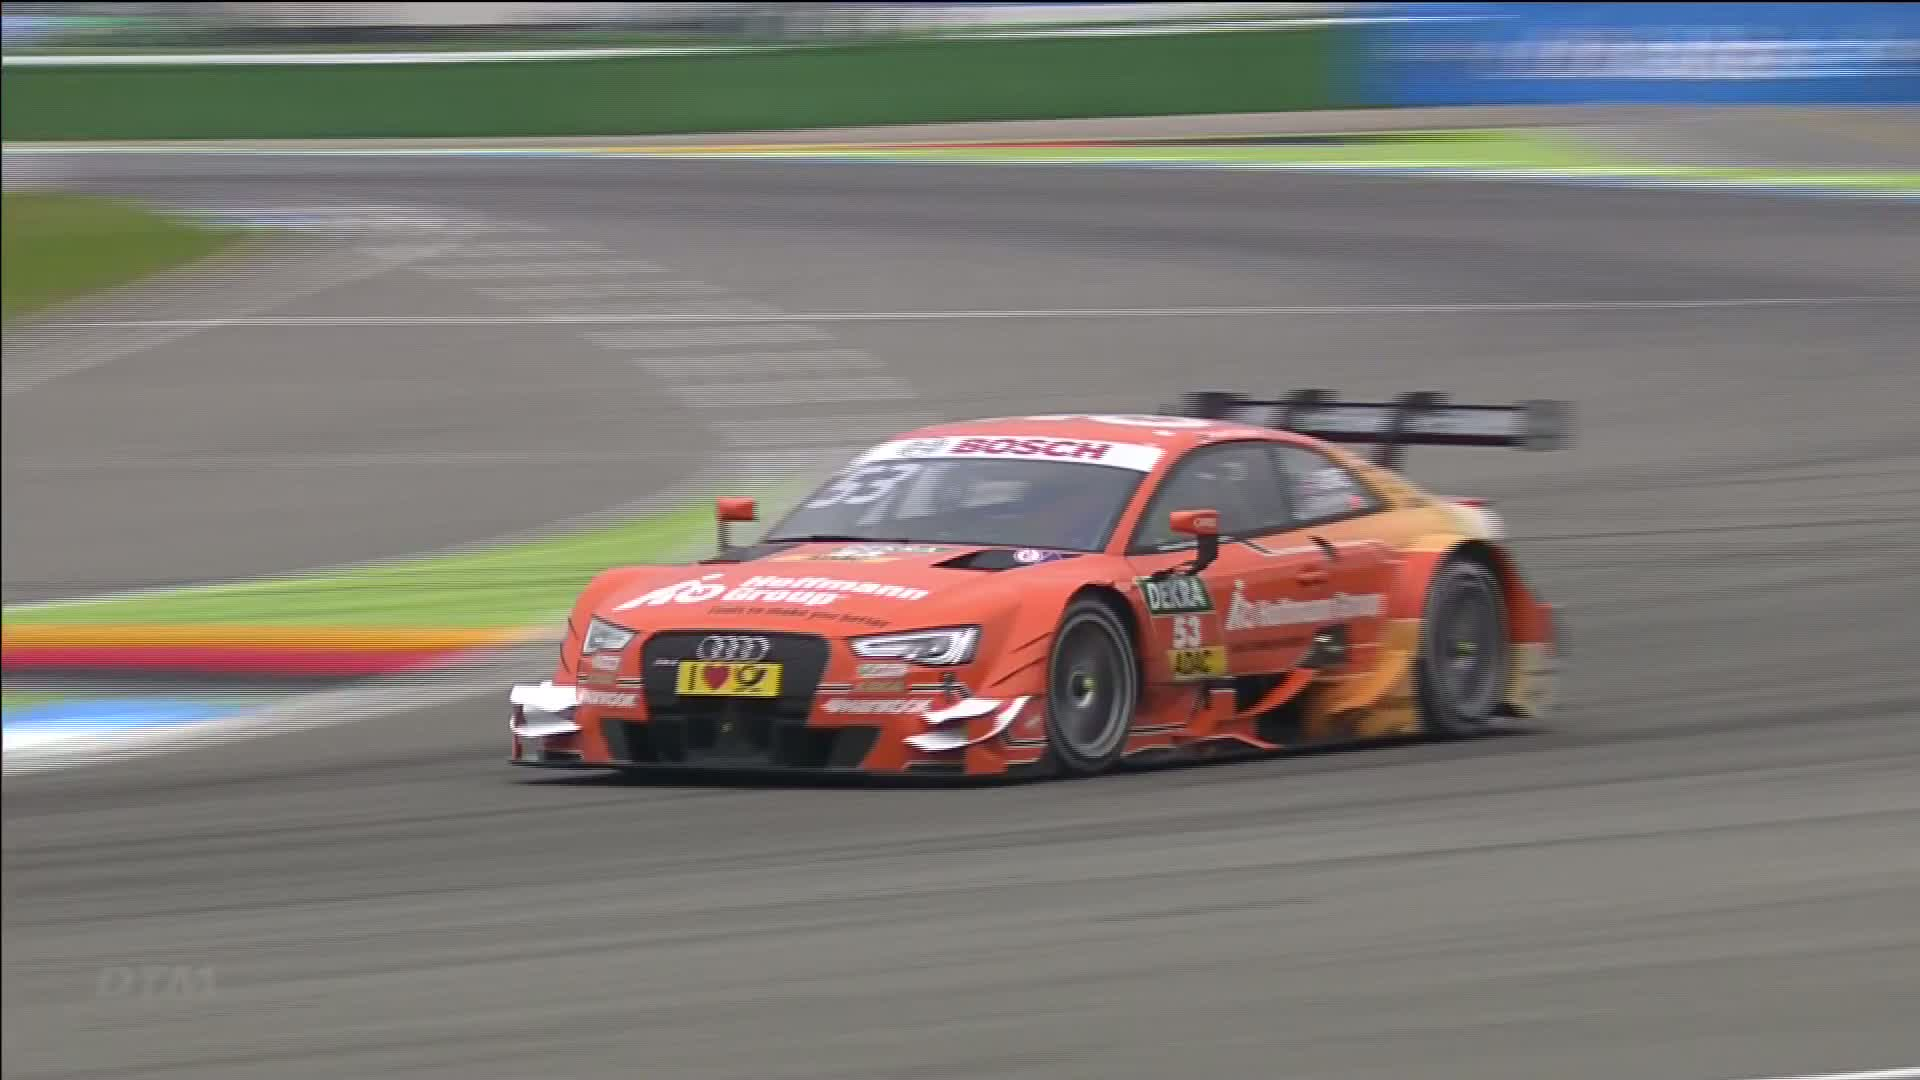 60 Seconds of Audi Sport 97/2015 - DTM Hockenheim, Rennen 2